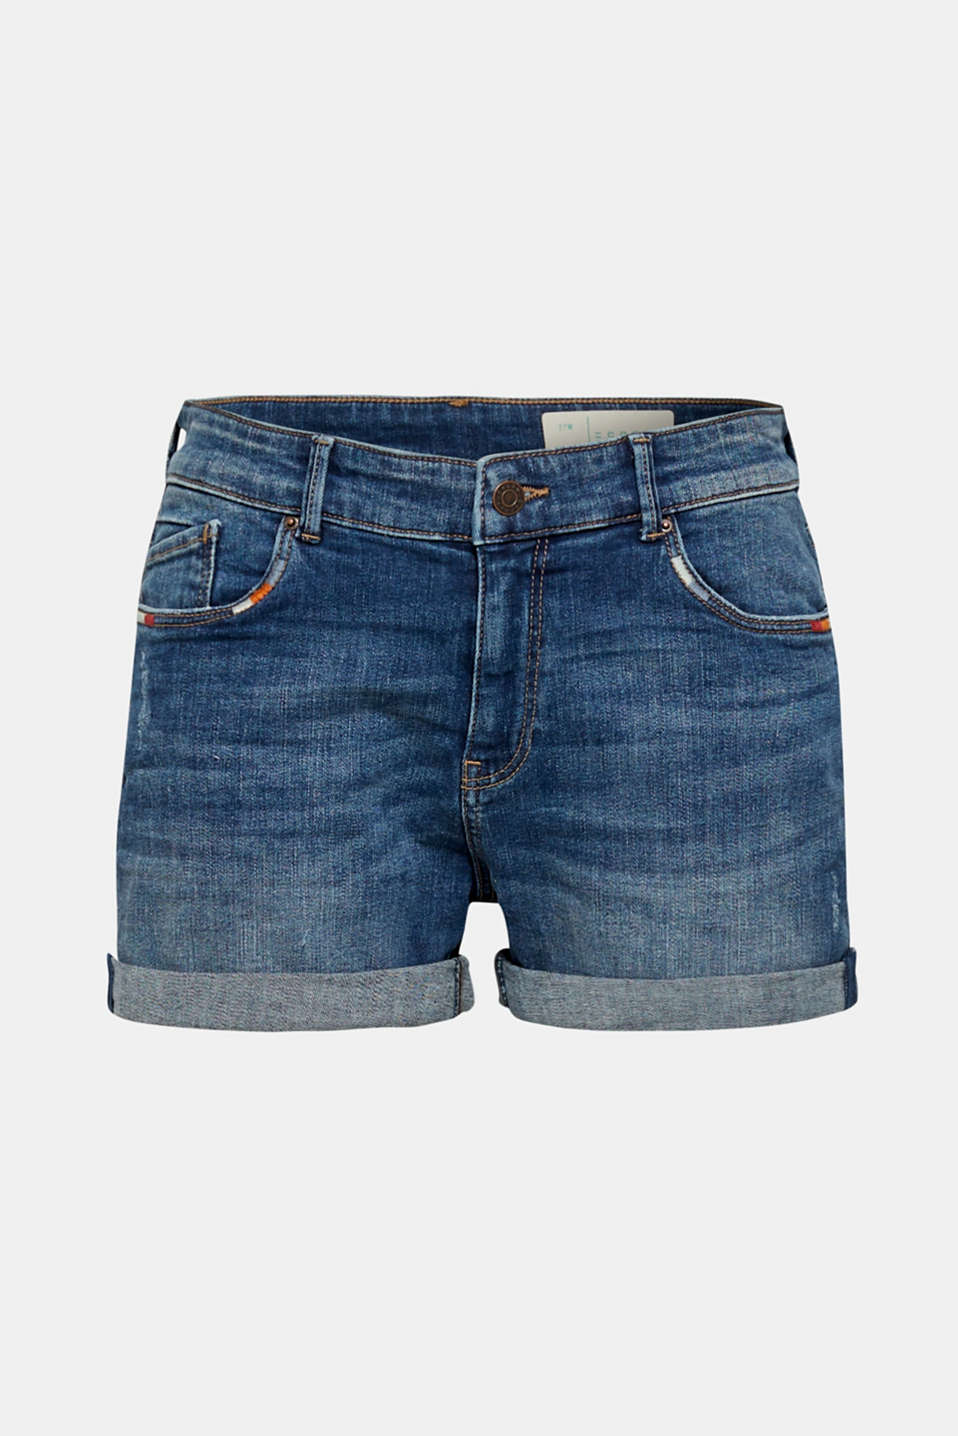 Shorts denim, BLUE MEDIUM WASH, detail image number 9